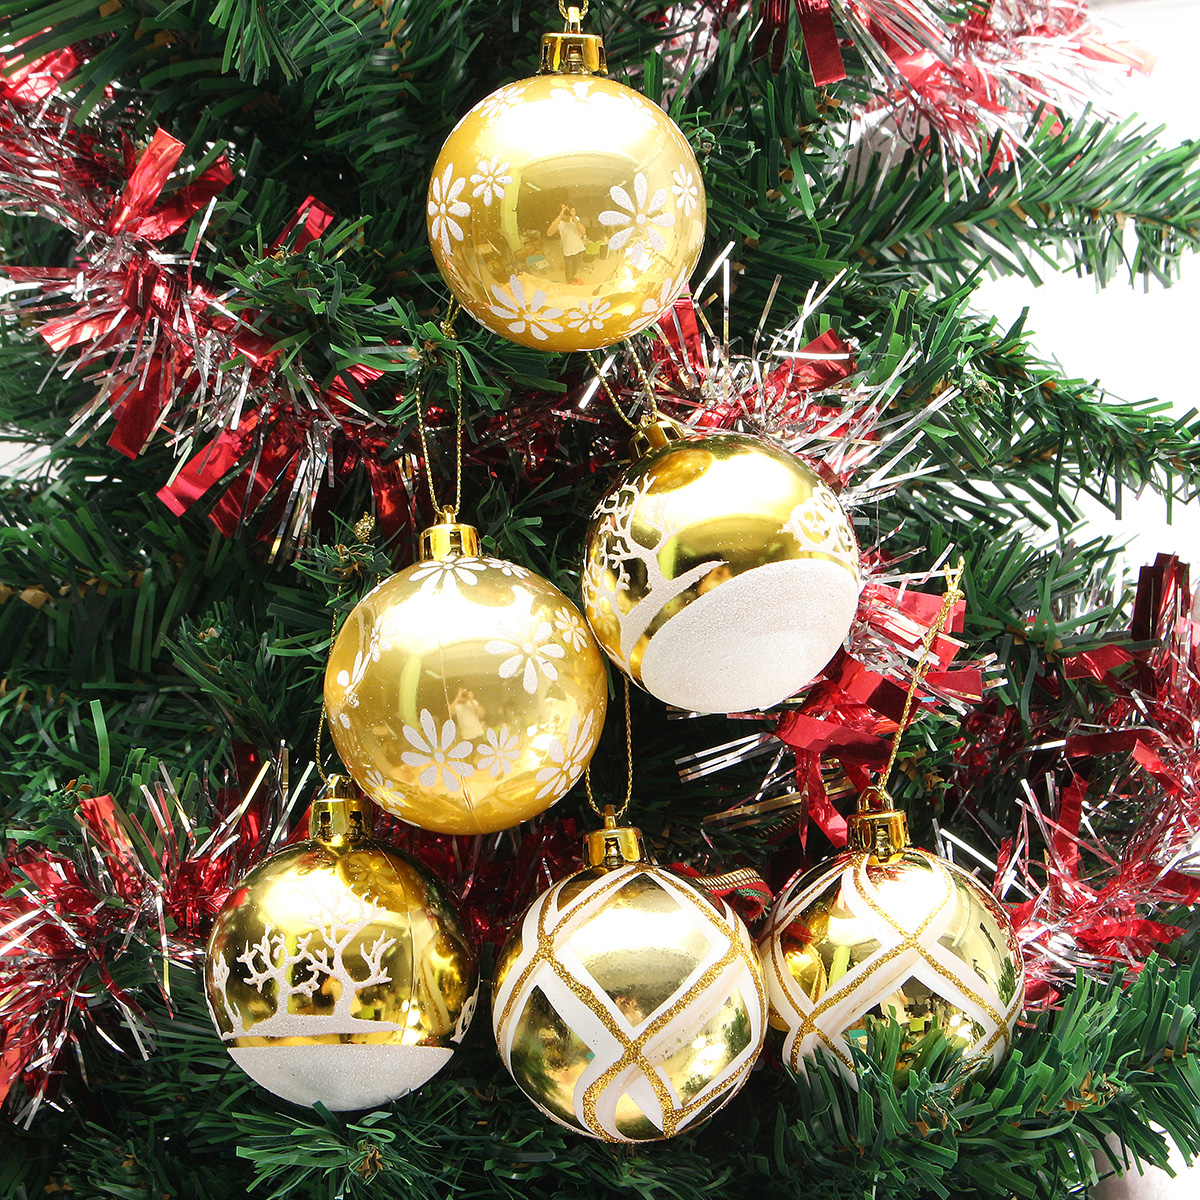 Christmas Tree Balls.Plastic Christmas Baubles Handmade Painted Ball Tree Balls Decorations 6 24pcs